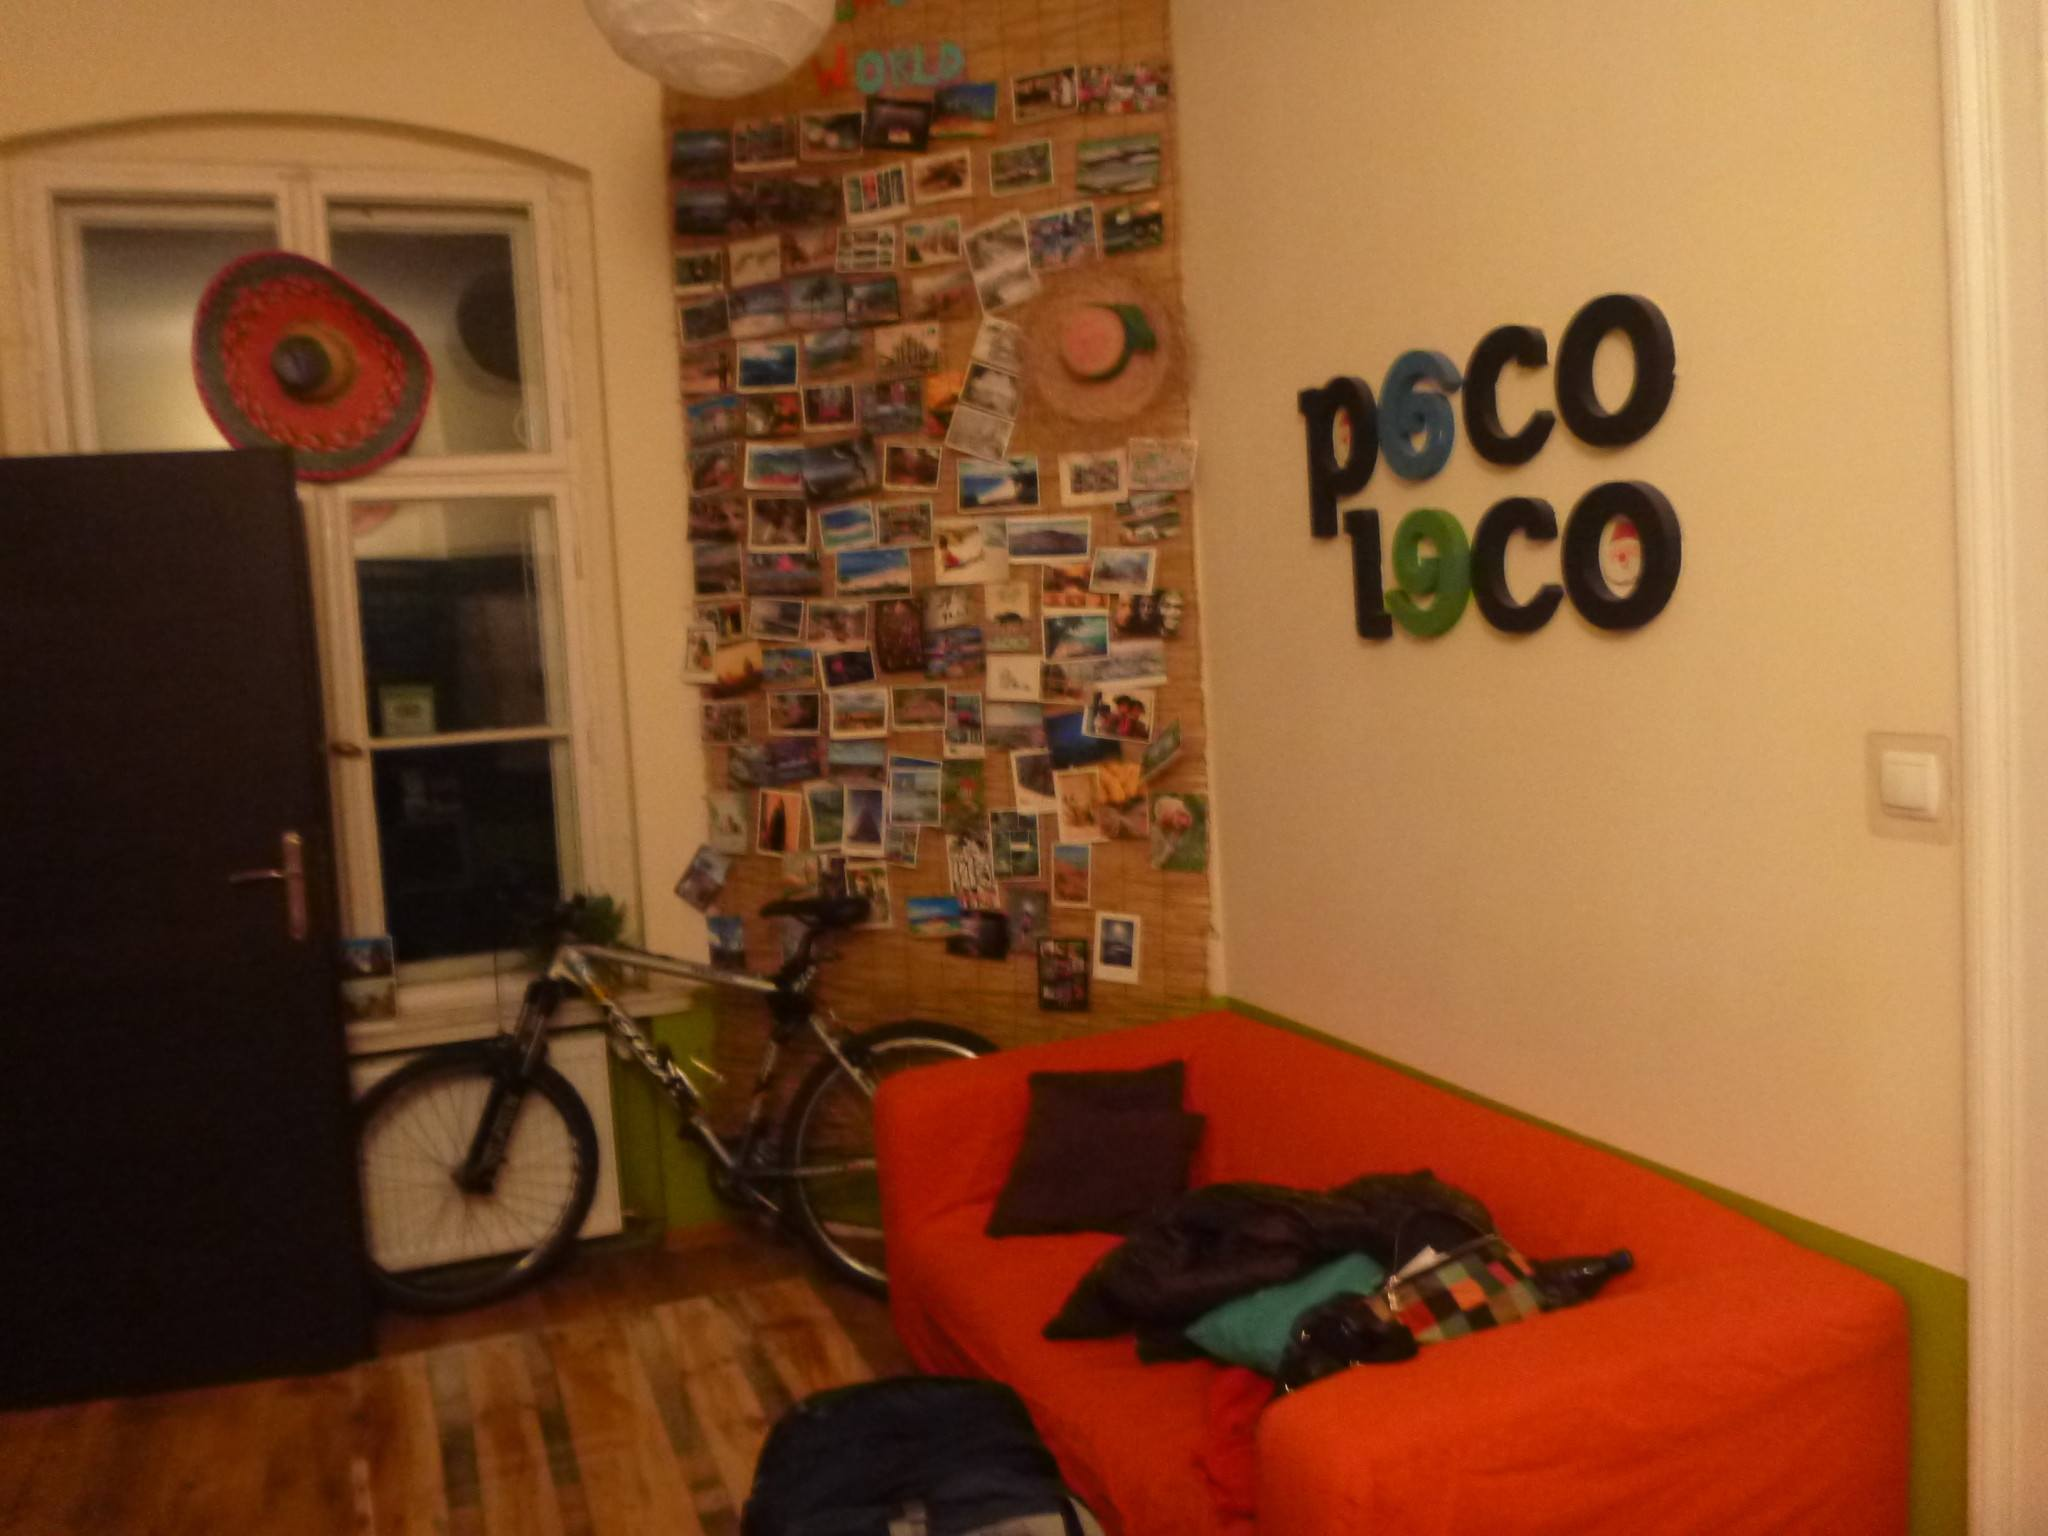 Backpacking in Poland: Staying at the Poco Loco Hostel in Poznan, Poland